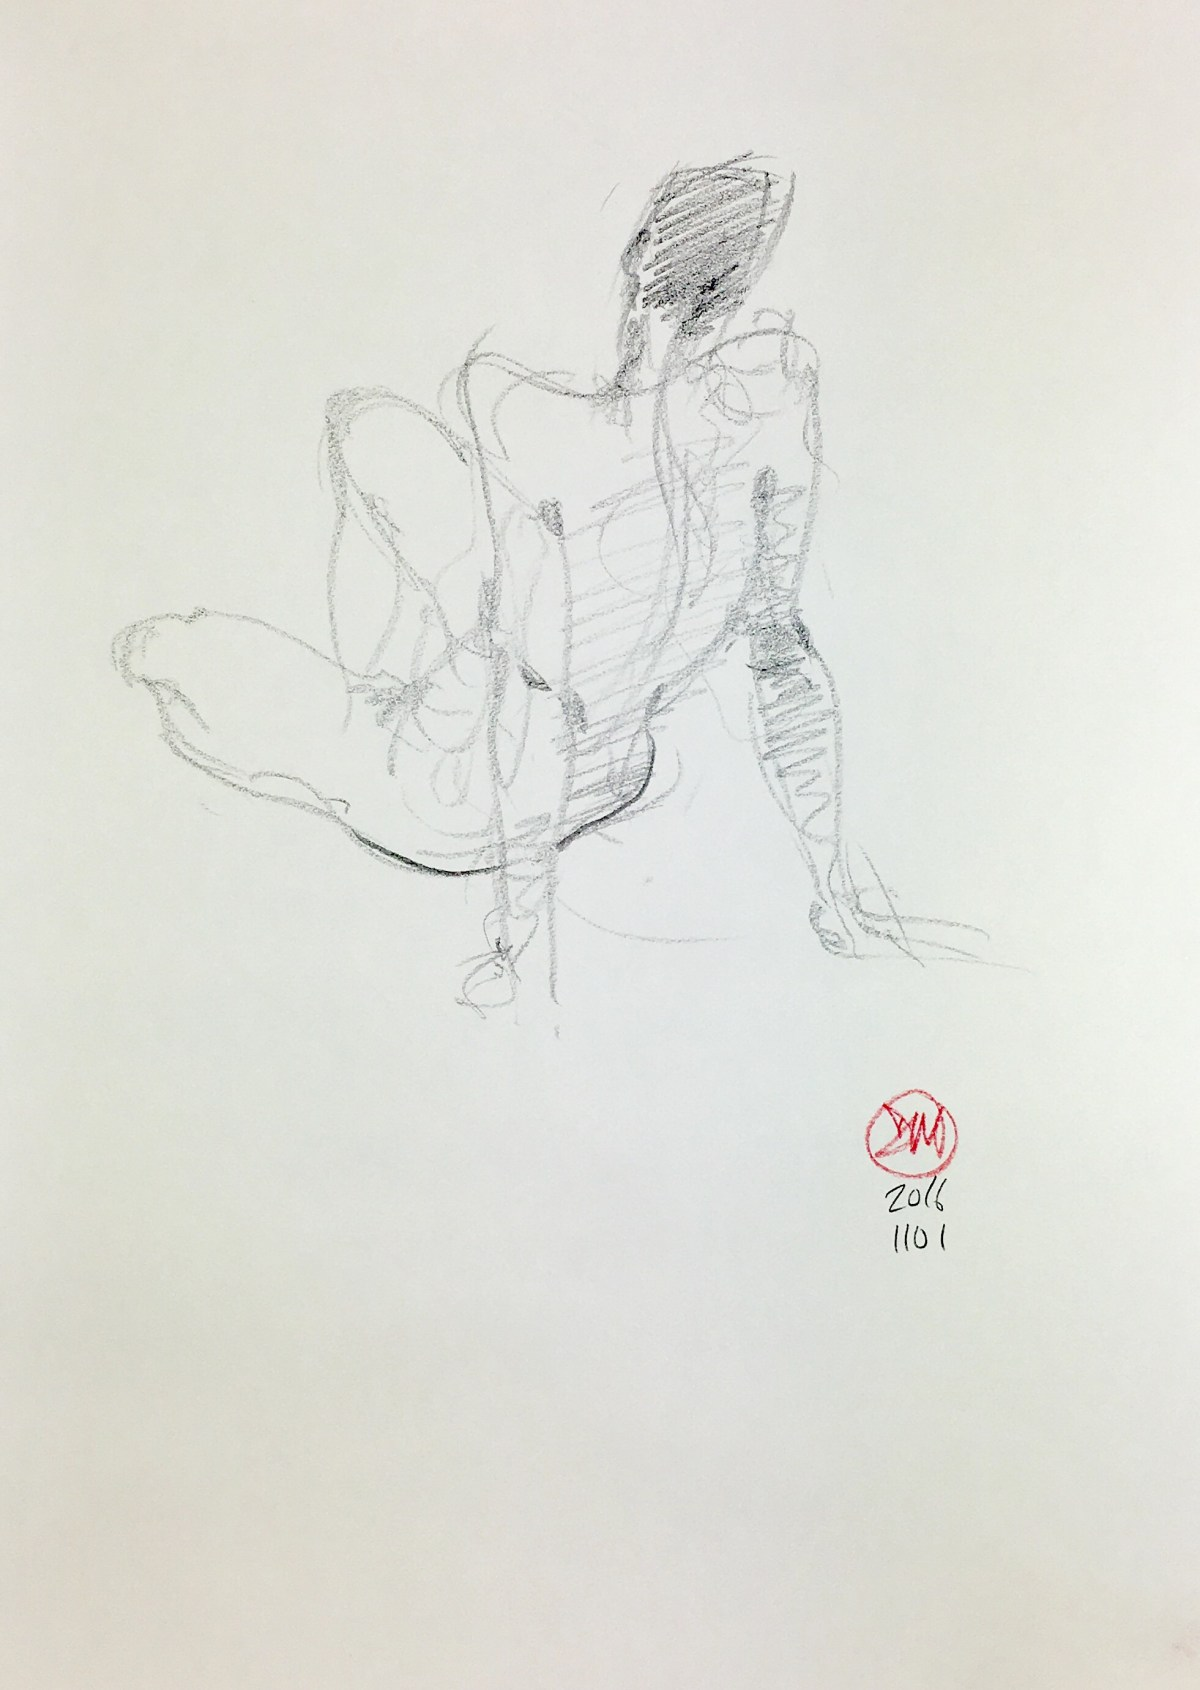 Life drawing last week